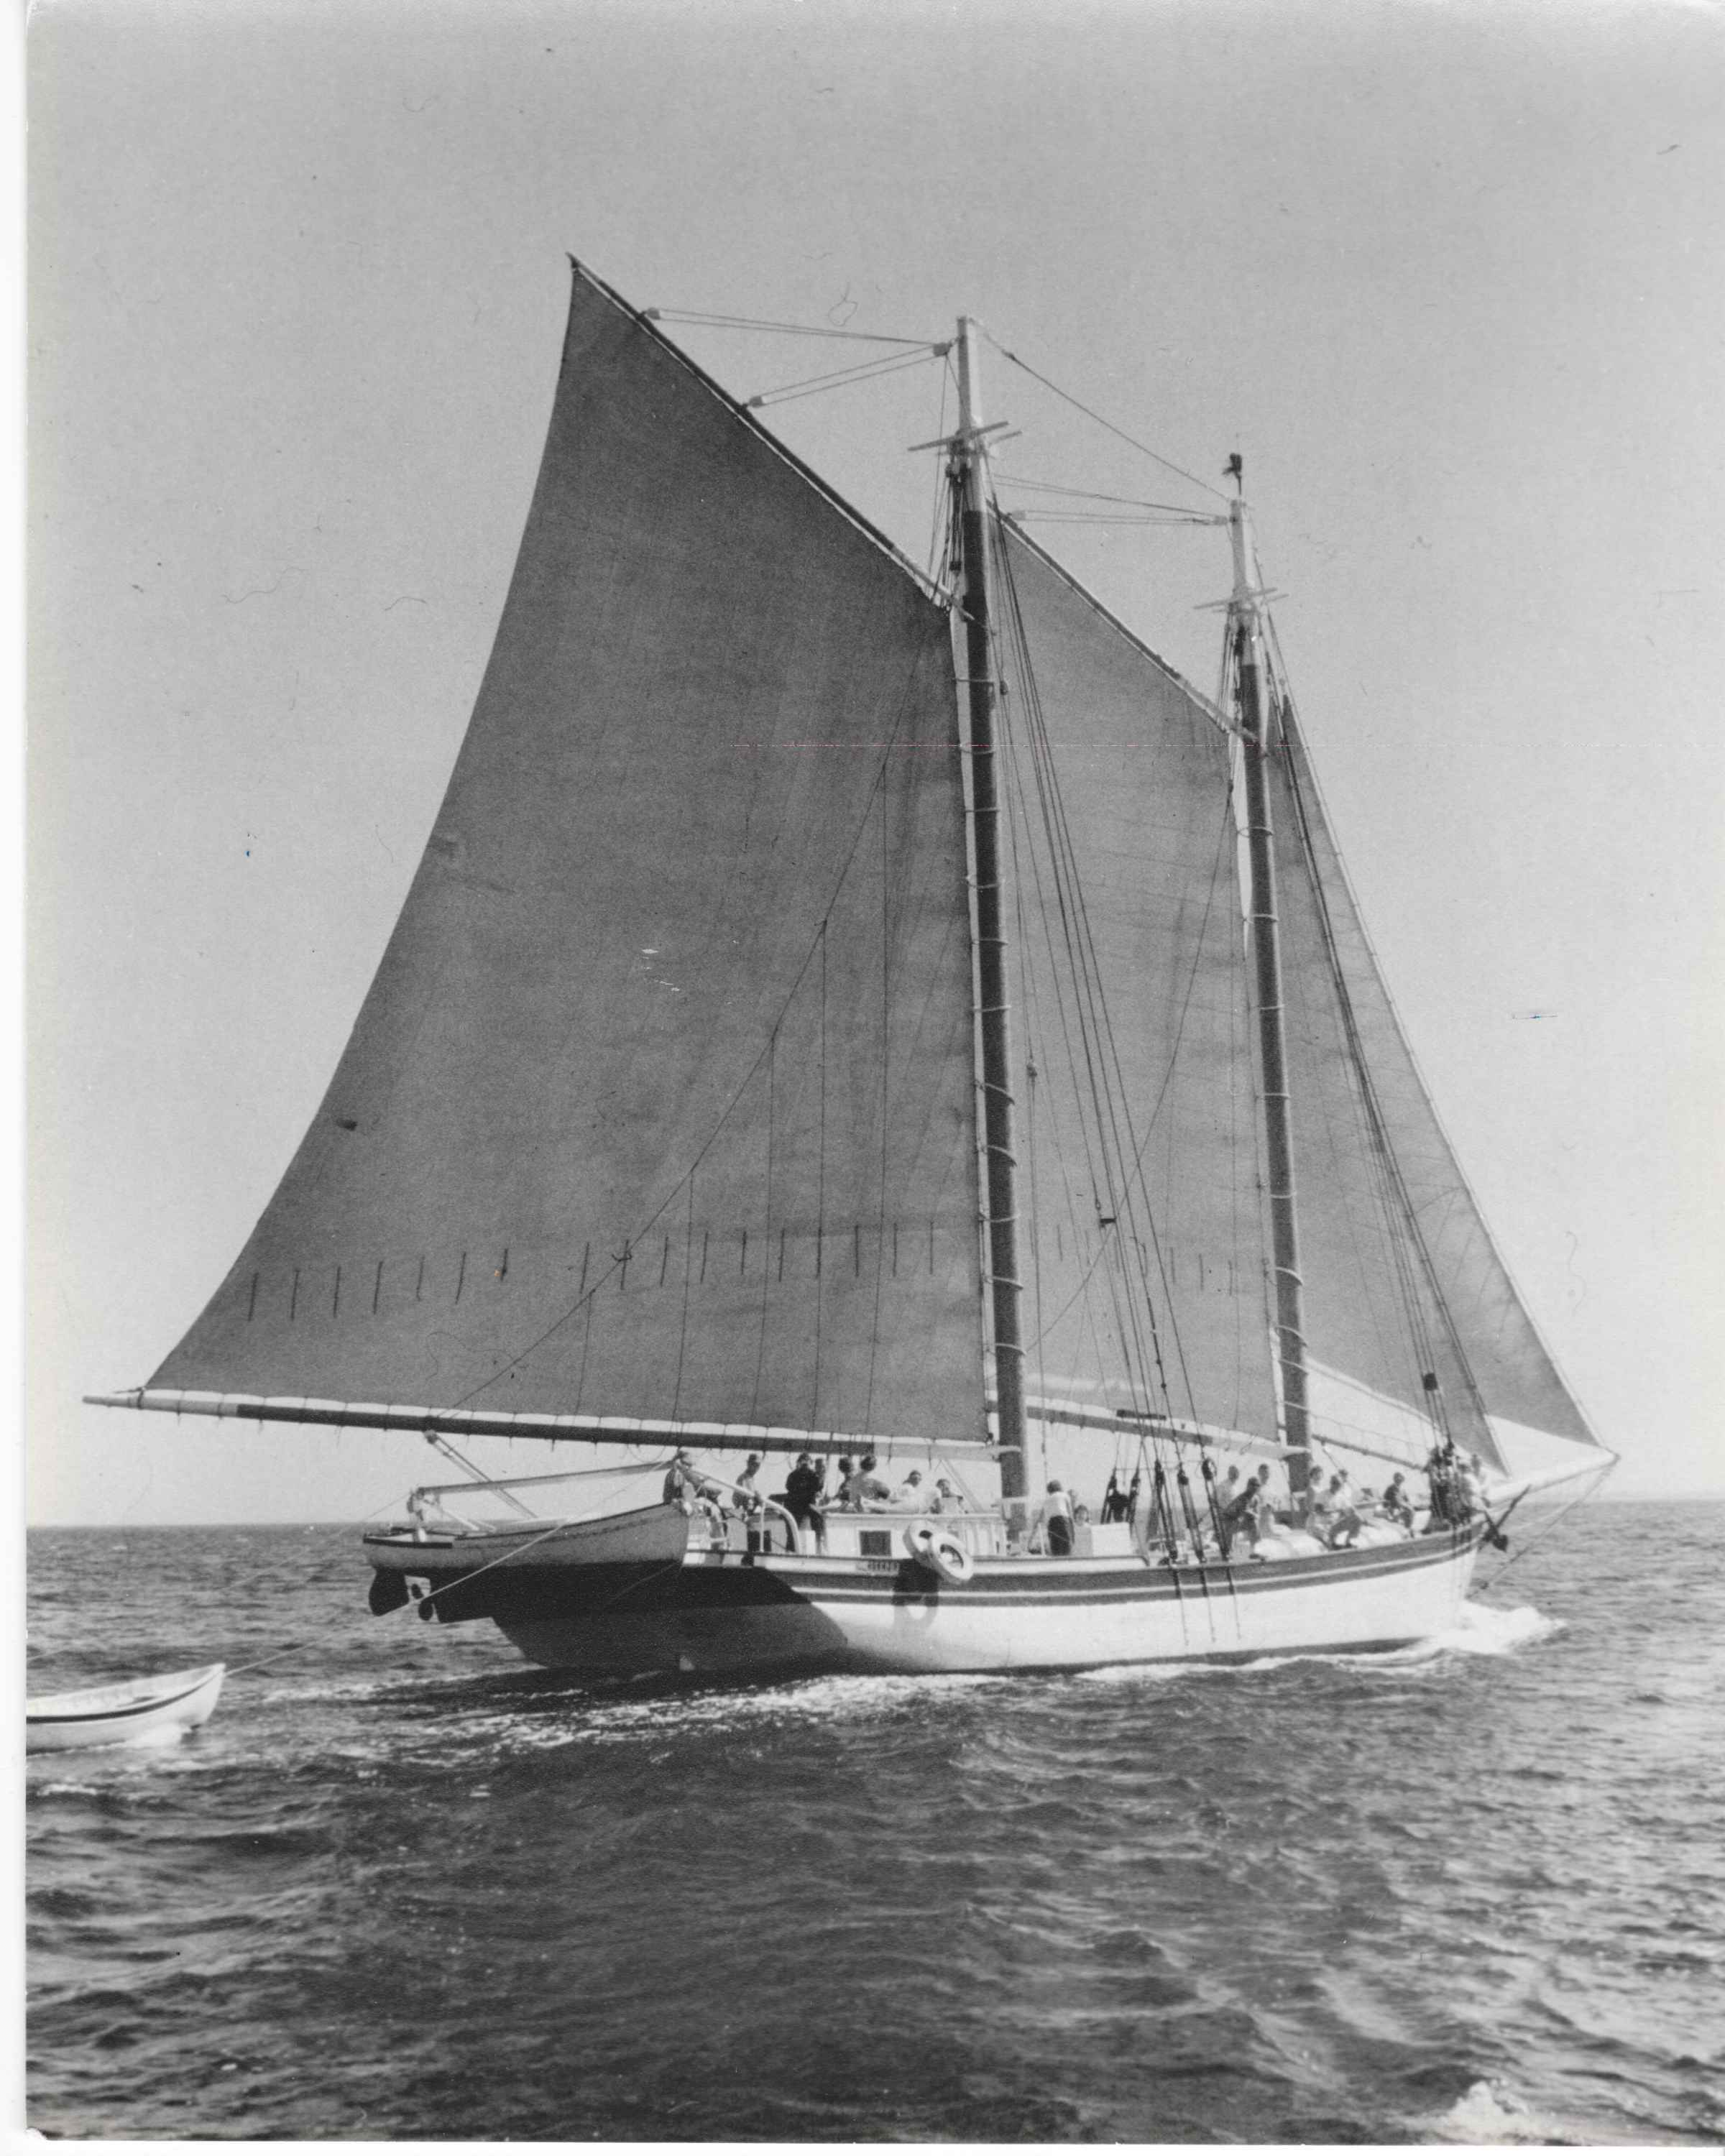 STEPHEN TABOR on Blue Hill Bay, c.1960s. Webber's Cove Boatyards. Blue Hill, Maine.